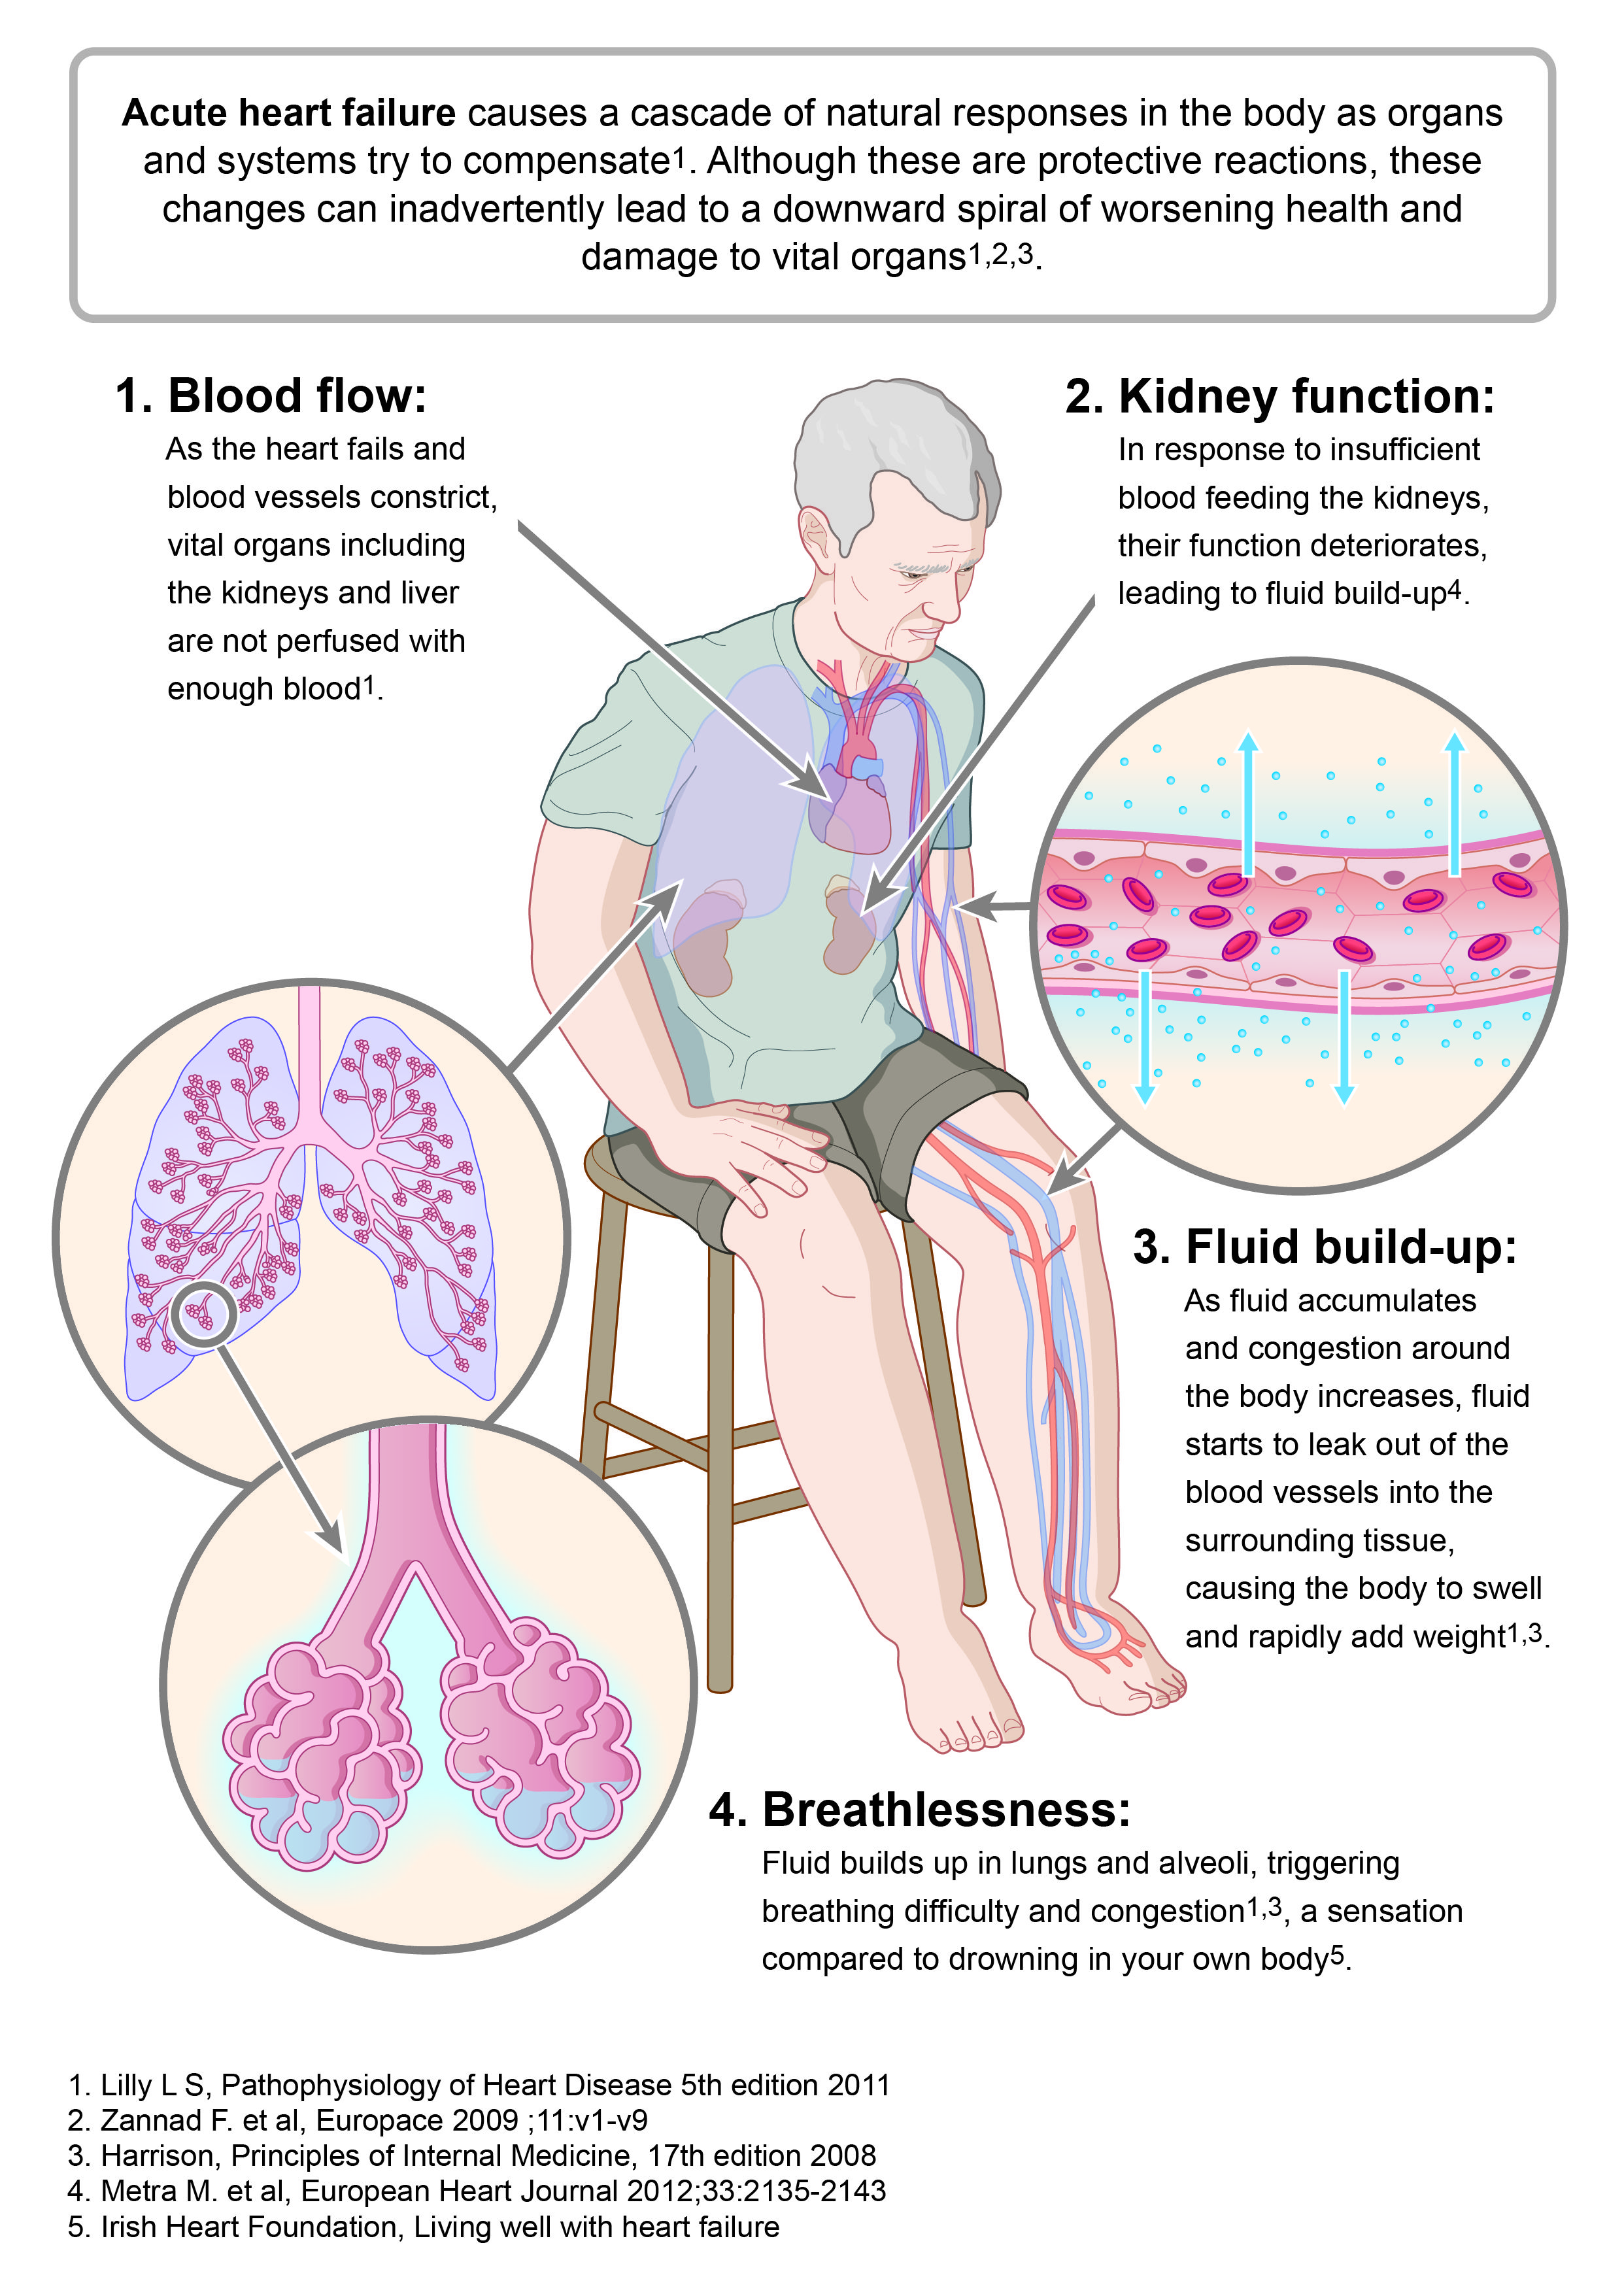 congestive heart failure causes types and symptons Congestive heart failure is a heart condition that causes symptoms of shortness of breath, weakness, fatigue, and swelling of the legs, ankles, and feet the 13 signs of congestive heart failure you need to know.